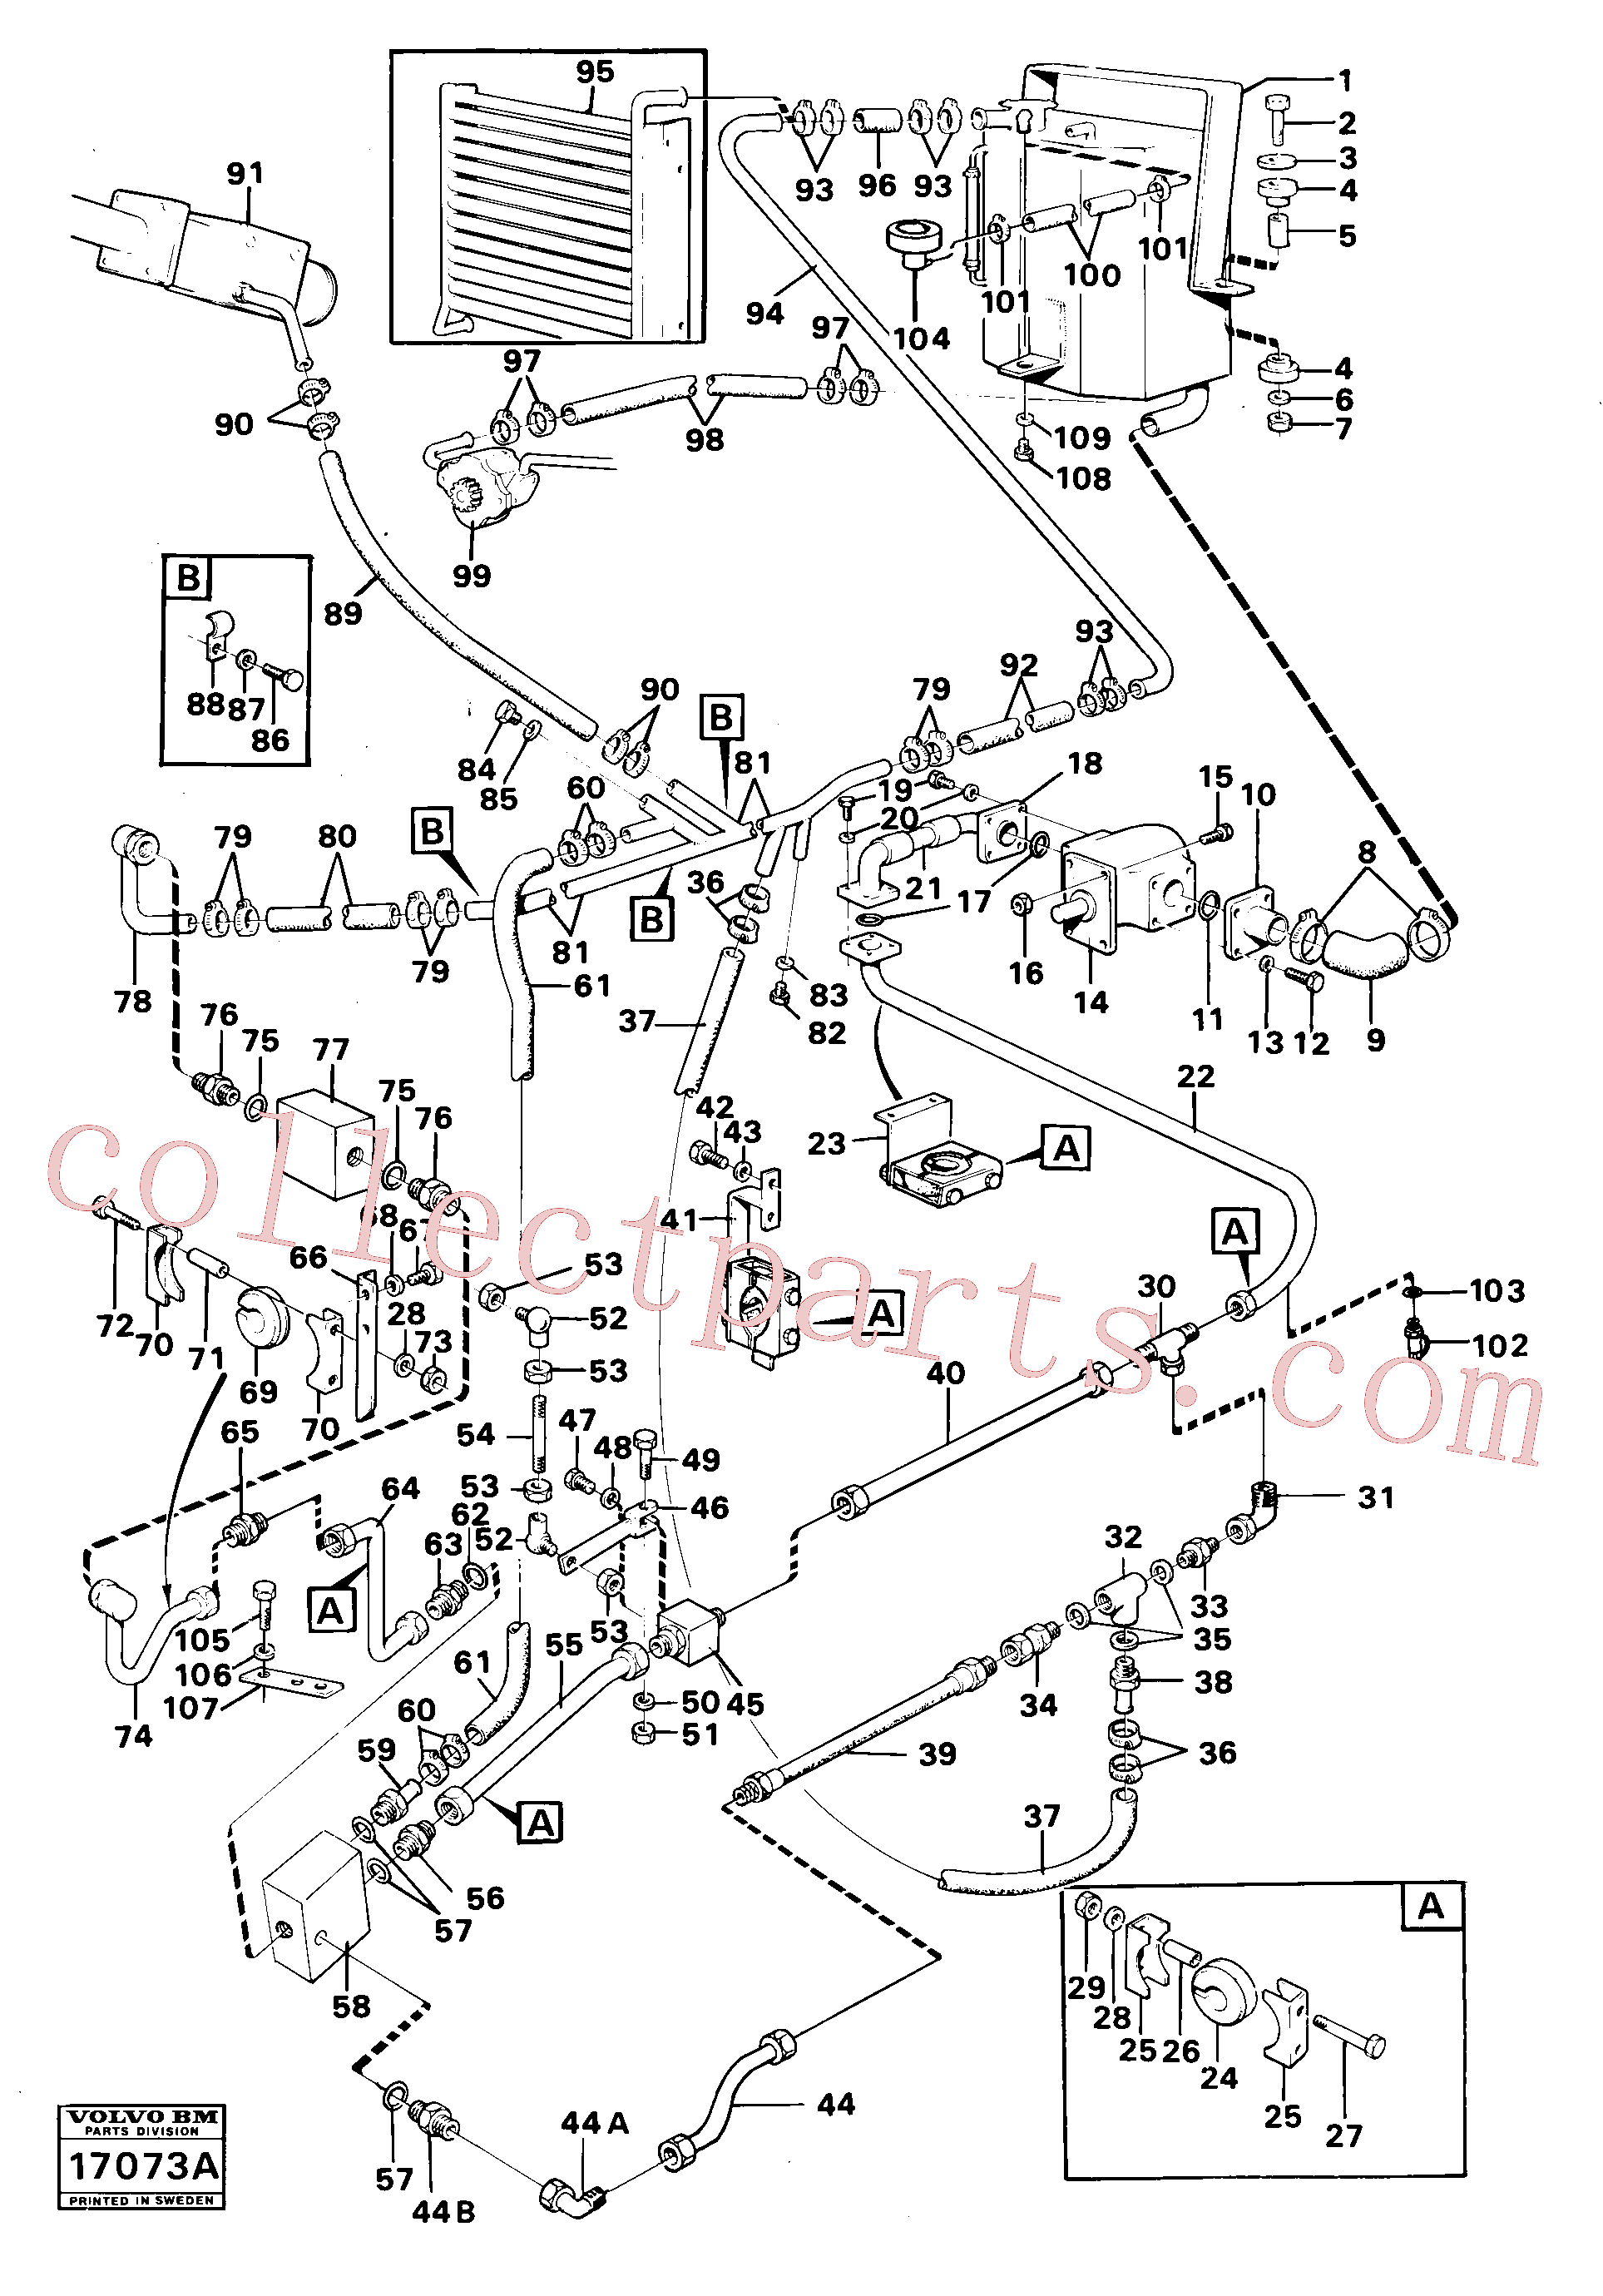 VOE11998170 for Volvo Hydraulic system(17073A assembly)